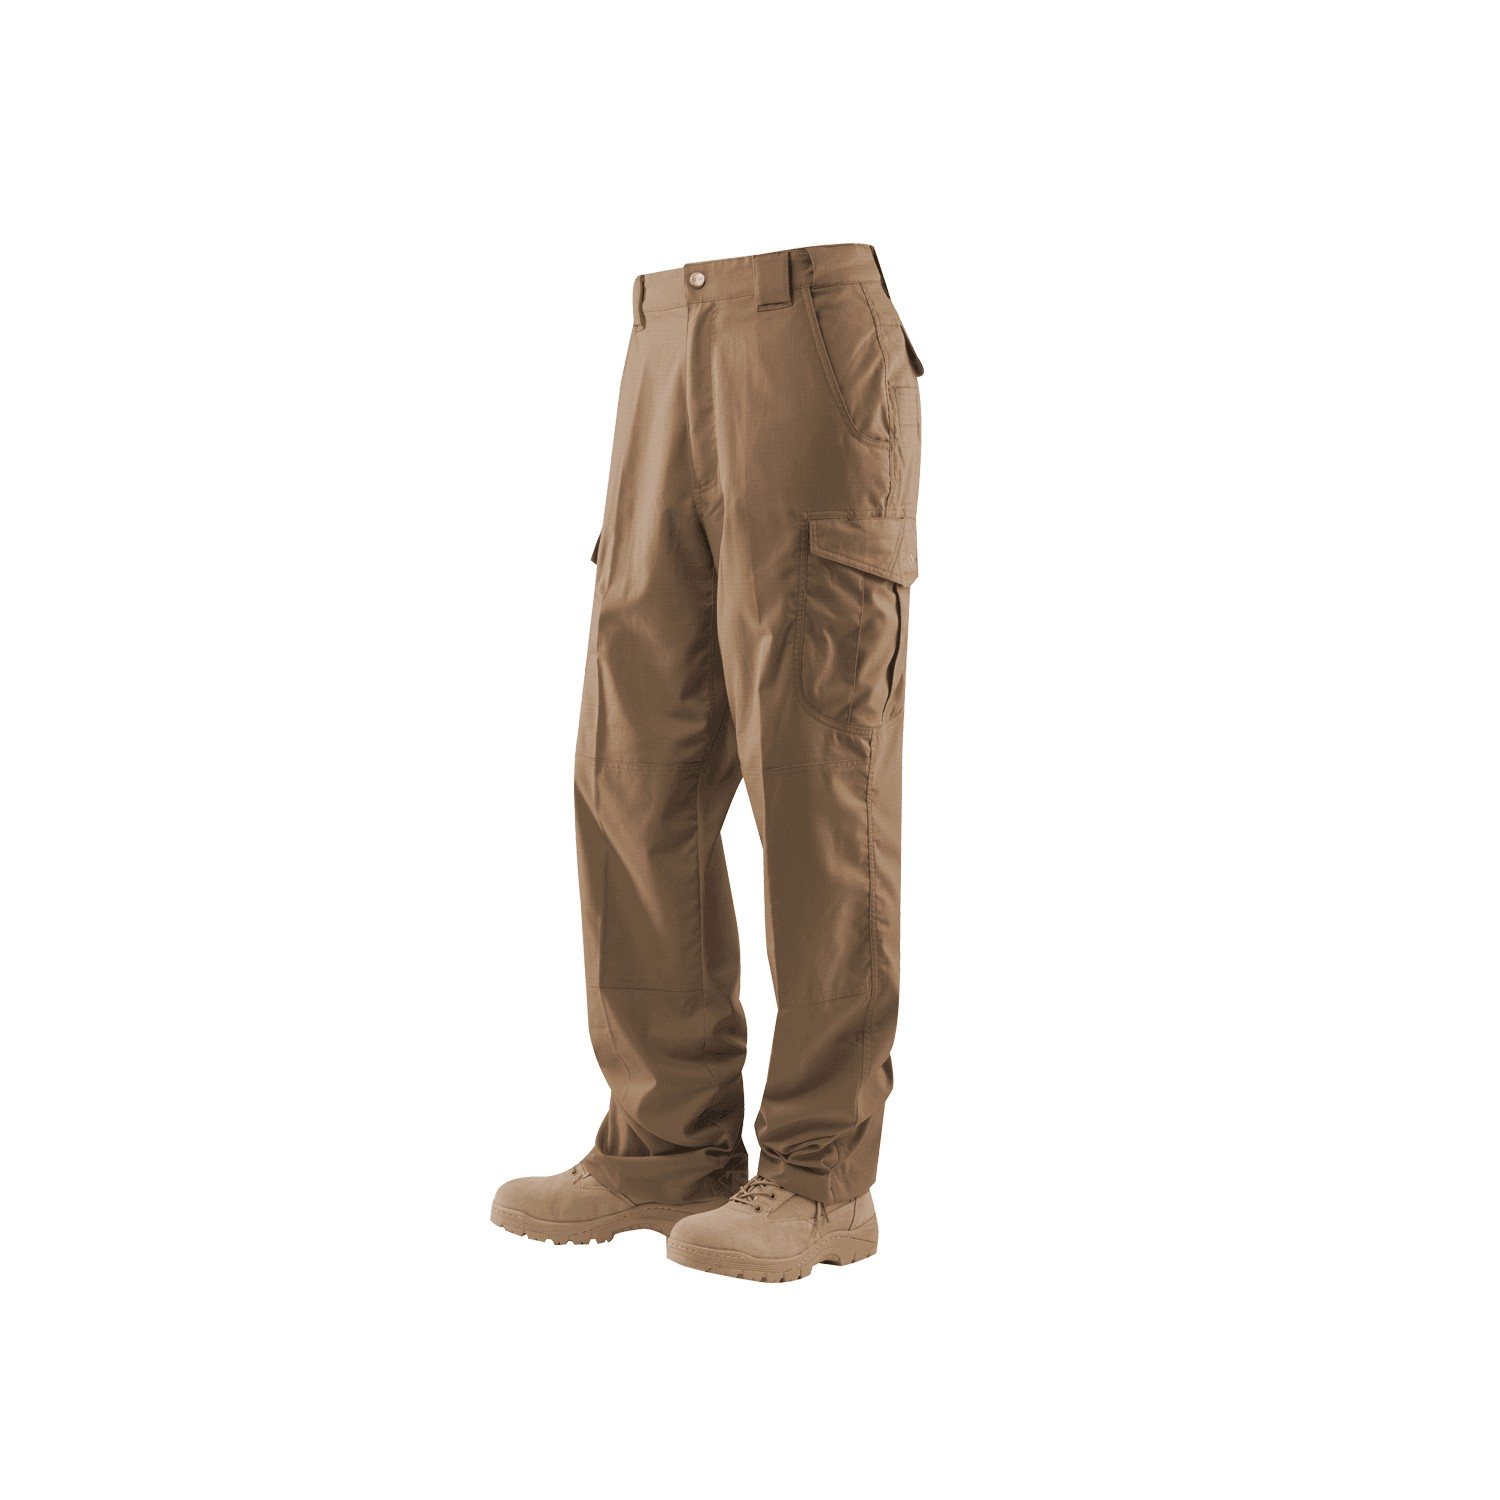 24-7 PANTALON ASCENT COYOTE